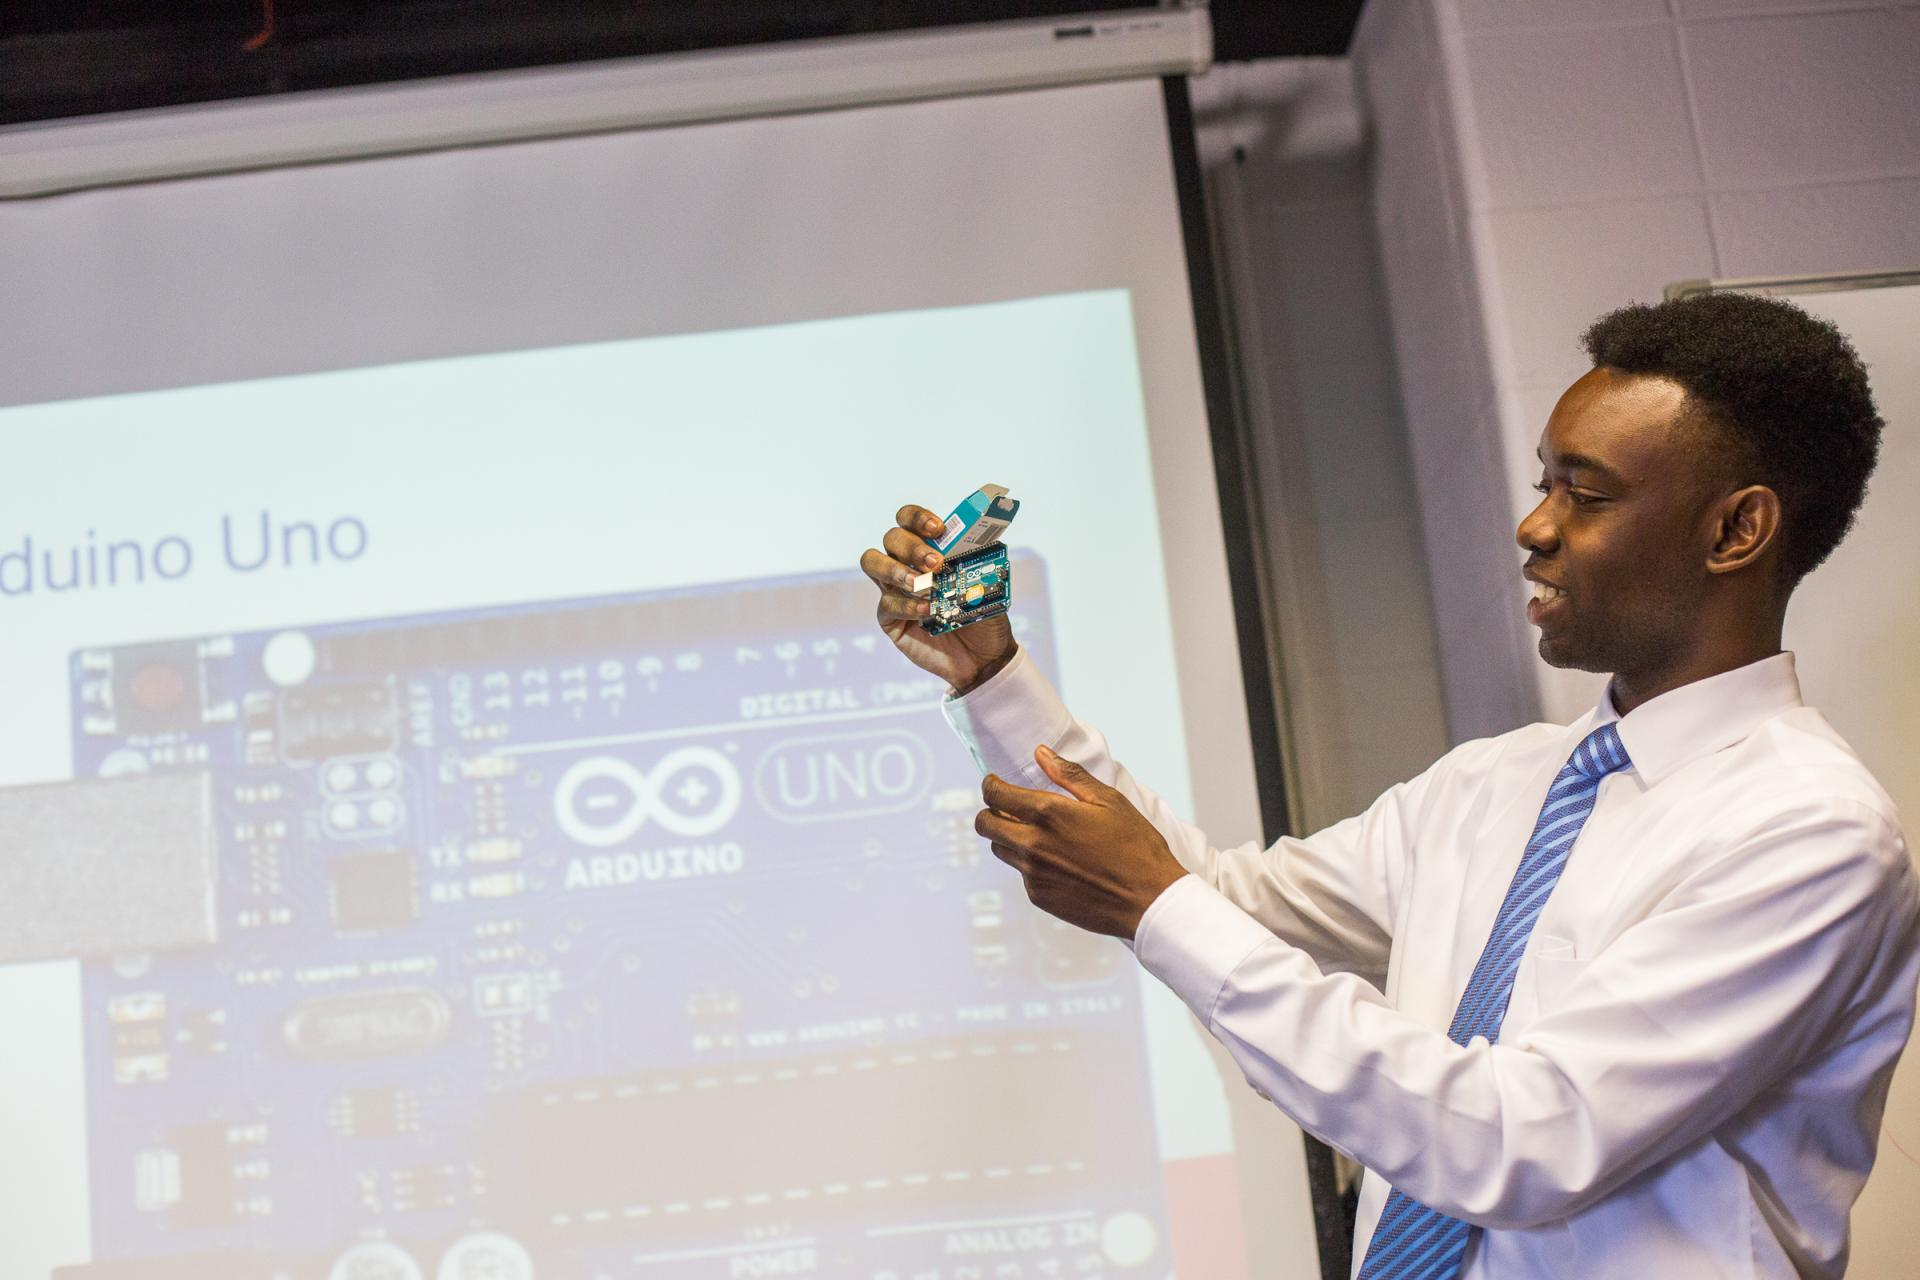 An E.N.G. student displays an arduino used in his research